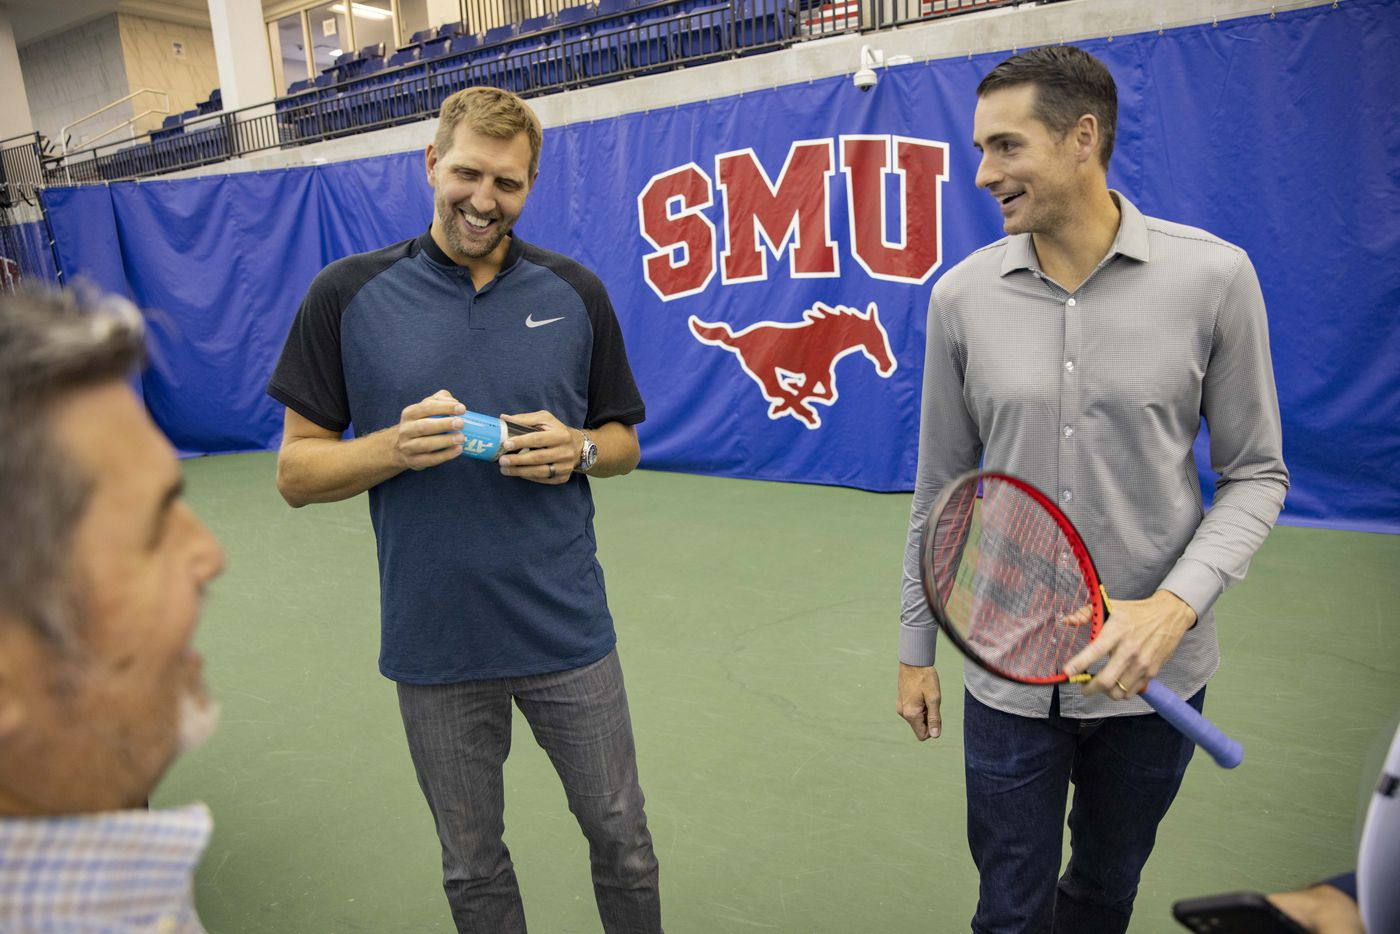 Dallas Mavericks star Dirk Nowitzki (left) and John Isner, 15-Time ATP Tour Champion, chat following a press conference to announce a new ATP tennis tour event coming to Dallas at the SMU Styslinger/Altec Tennis Complex on Wednesday, May 19, 2021, in Dallas. (Juan Figueroa/The Dallas Morning News)